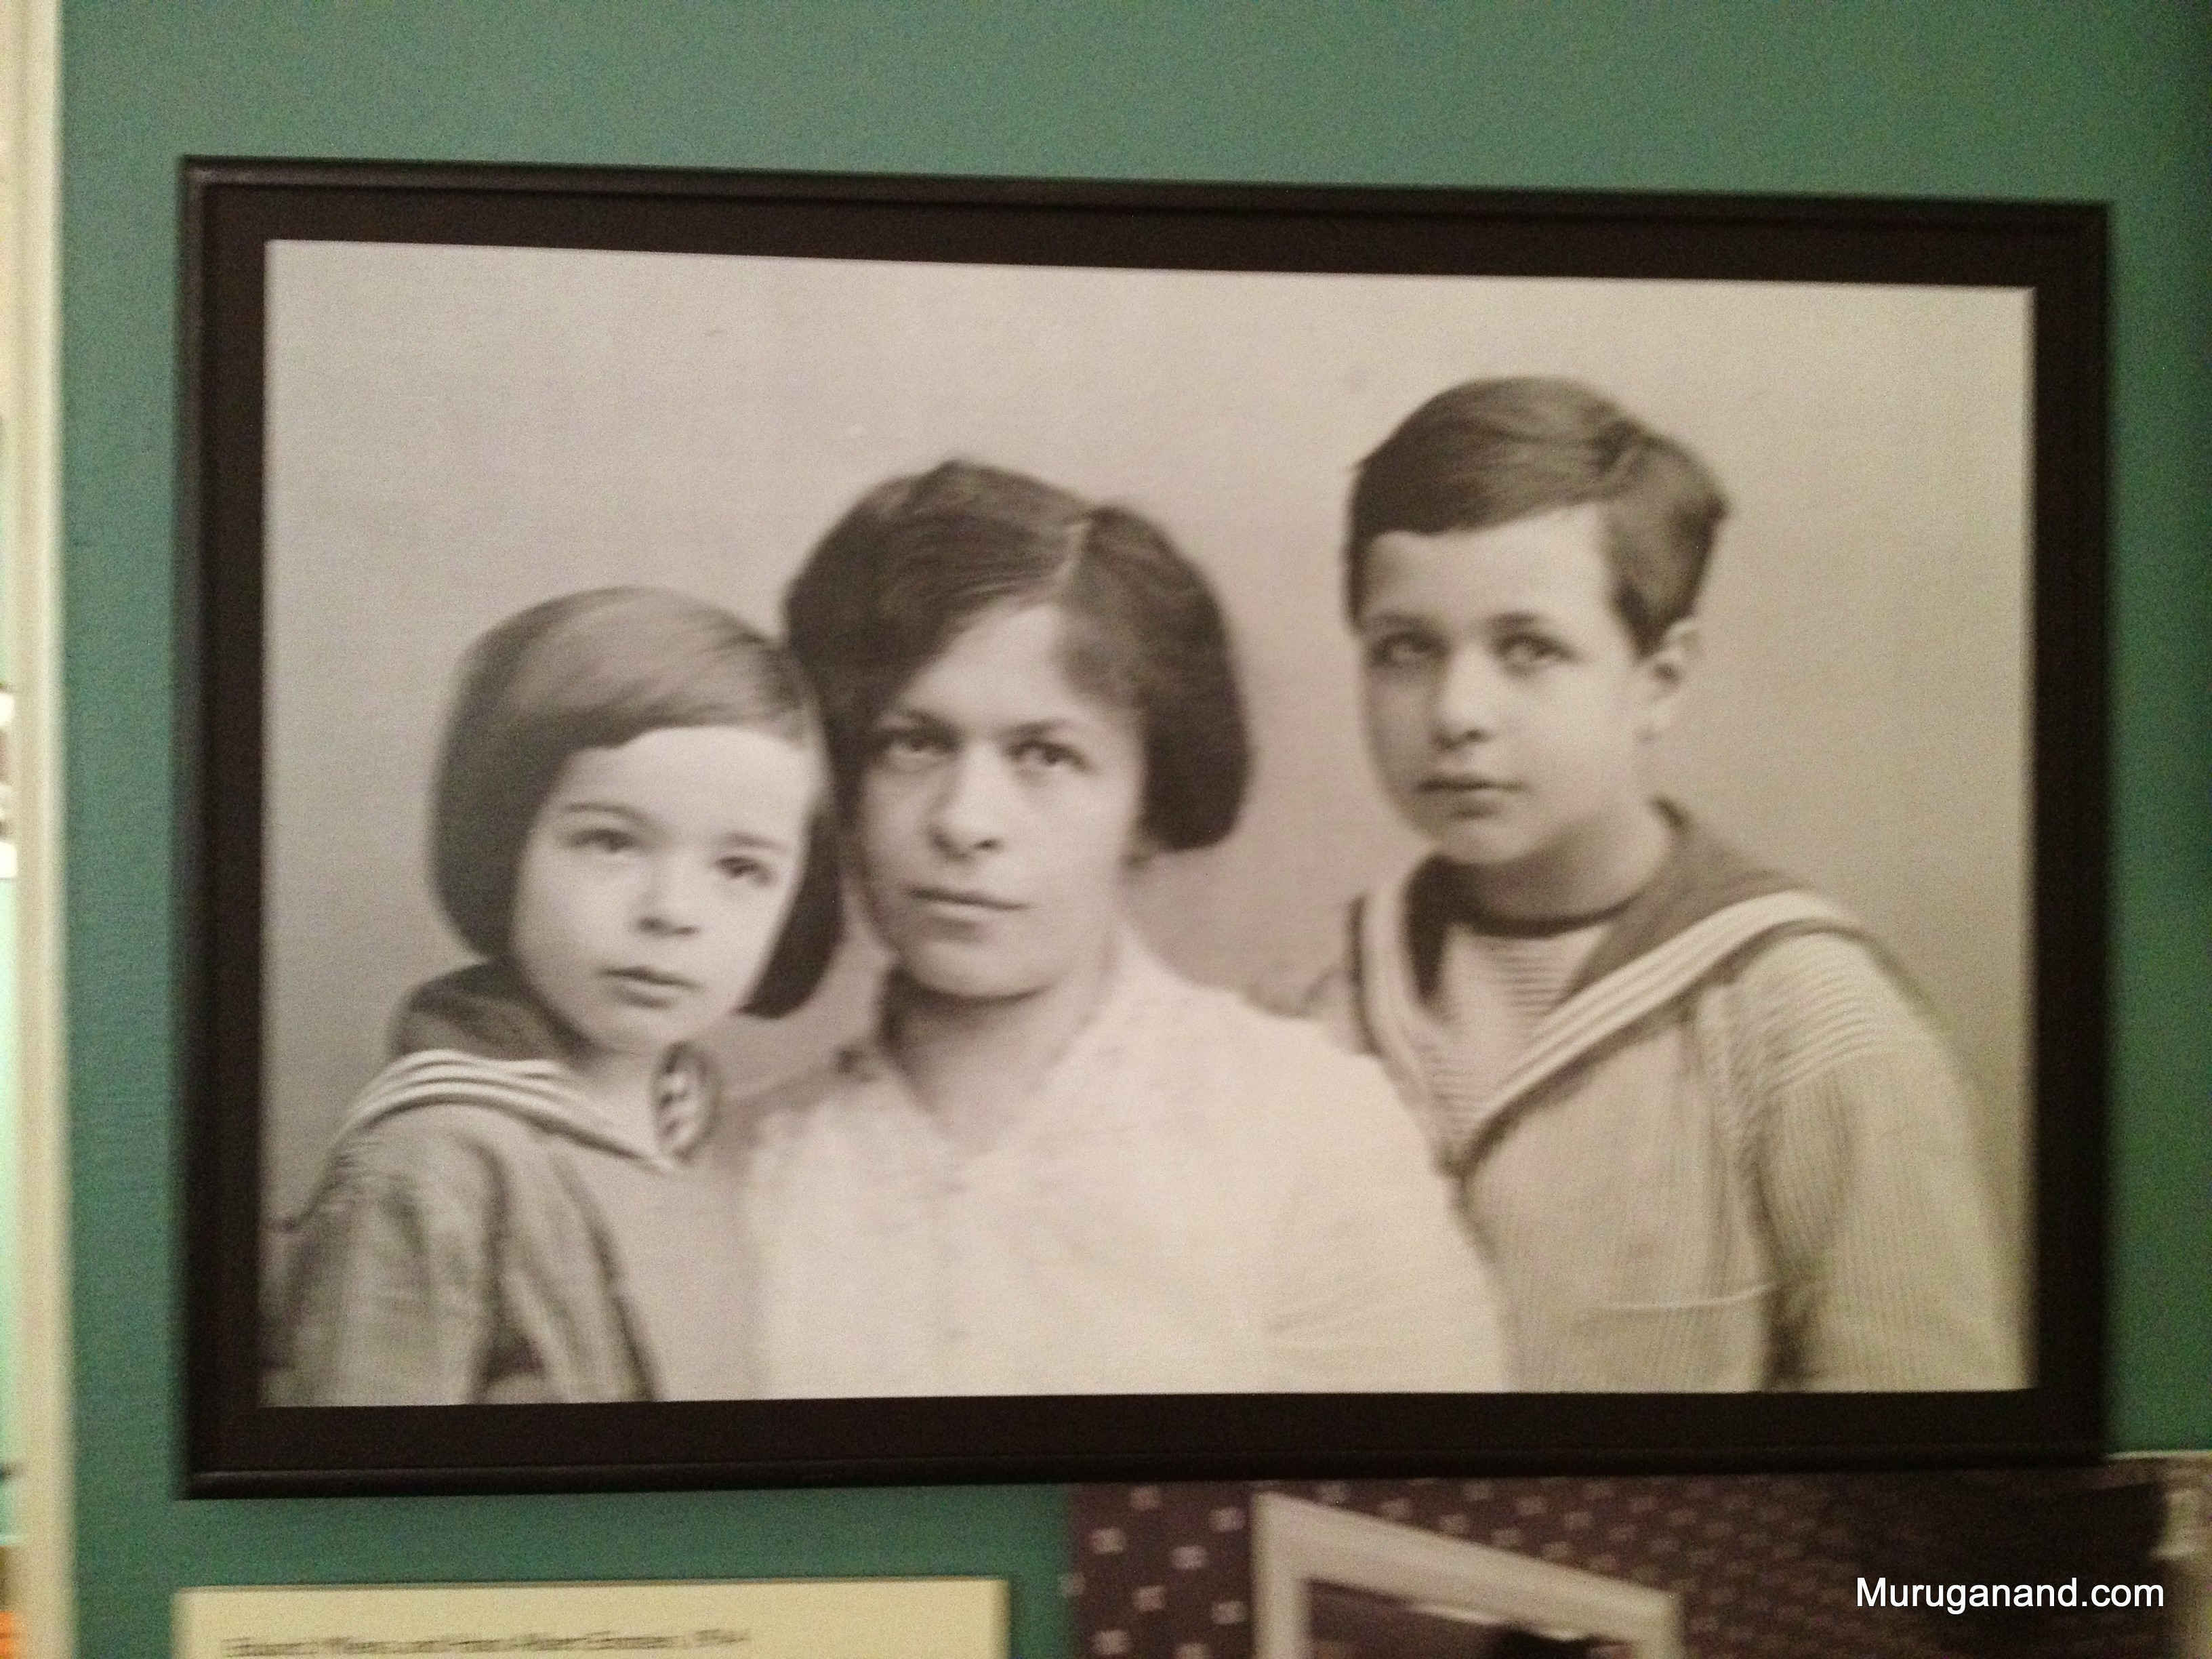 First wife Mileva (1875-1948) and children